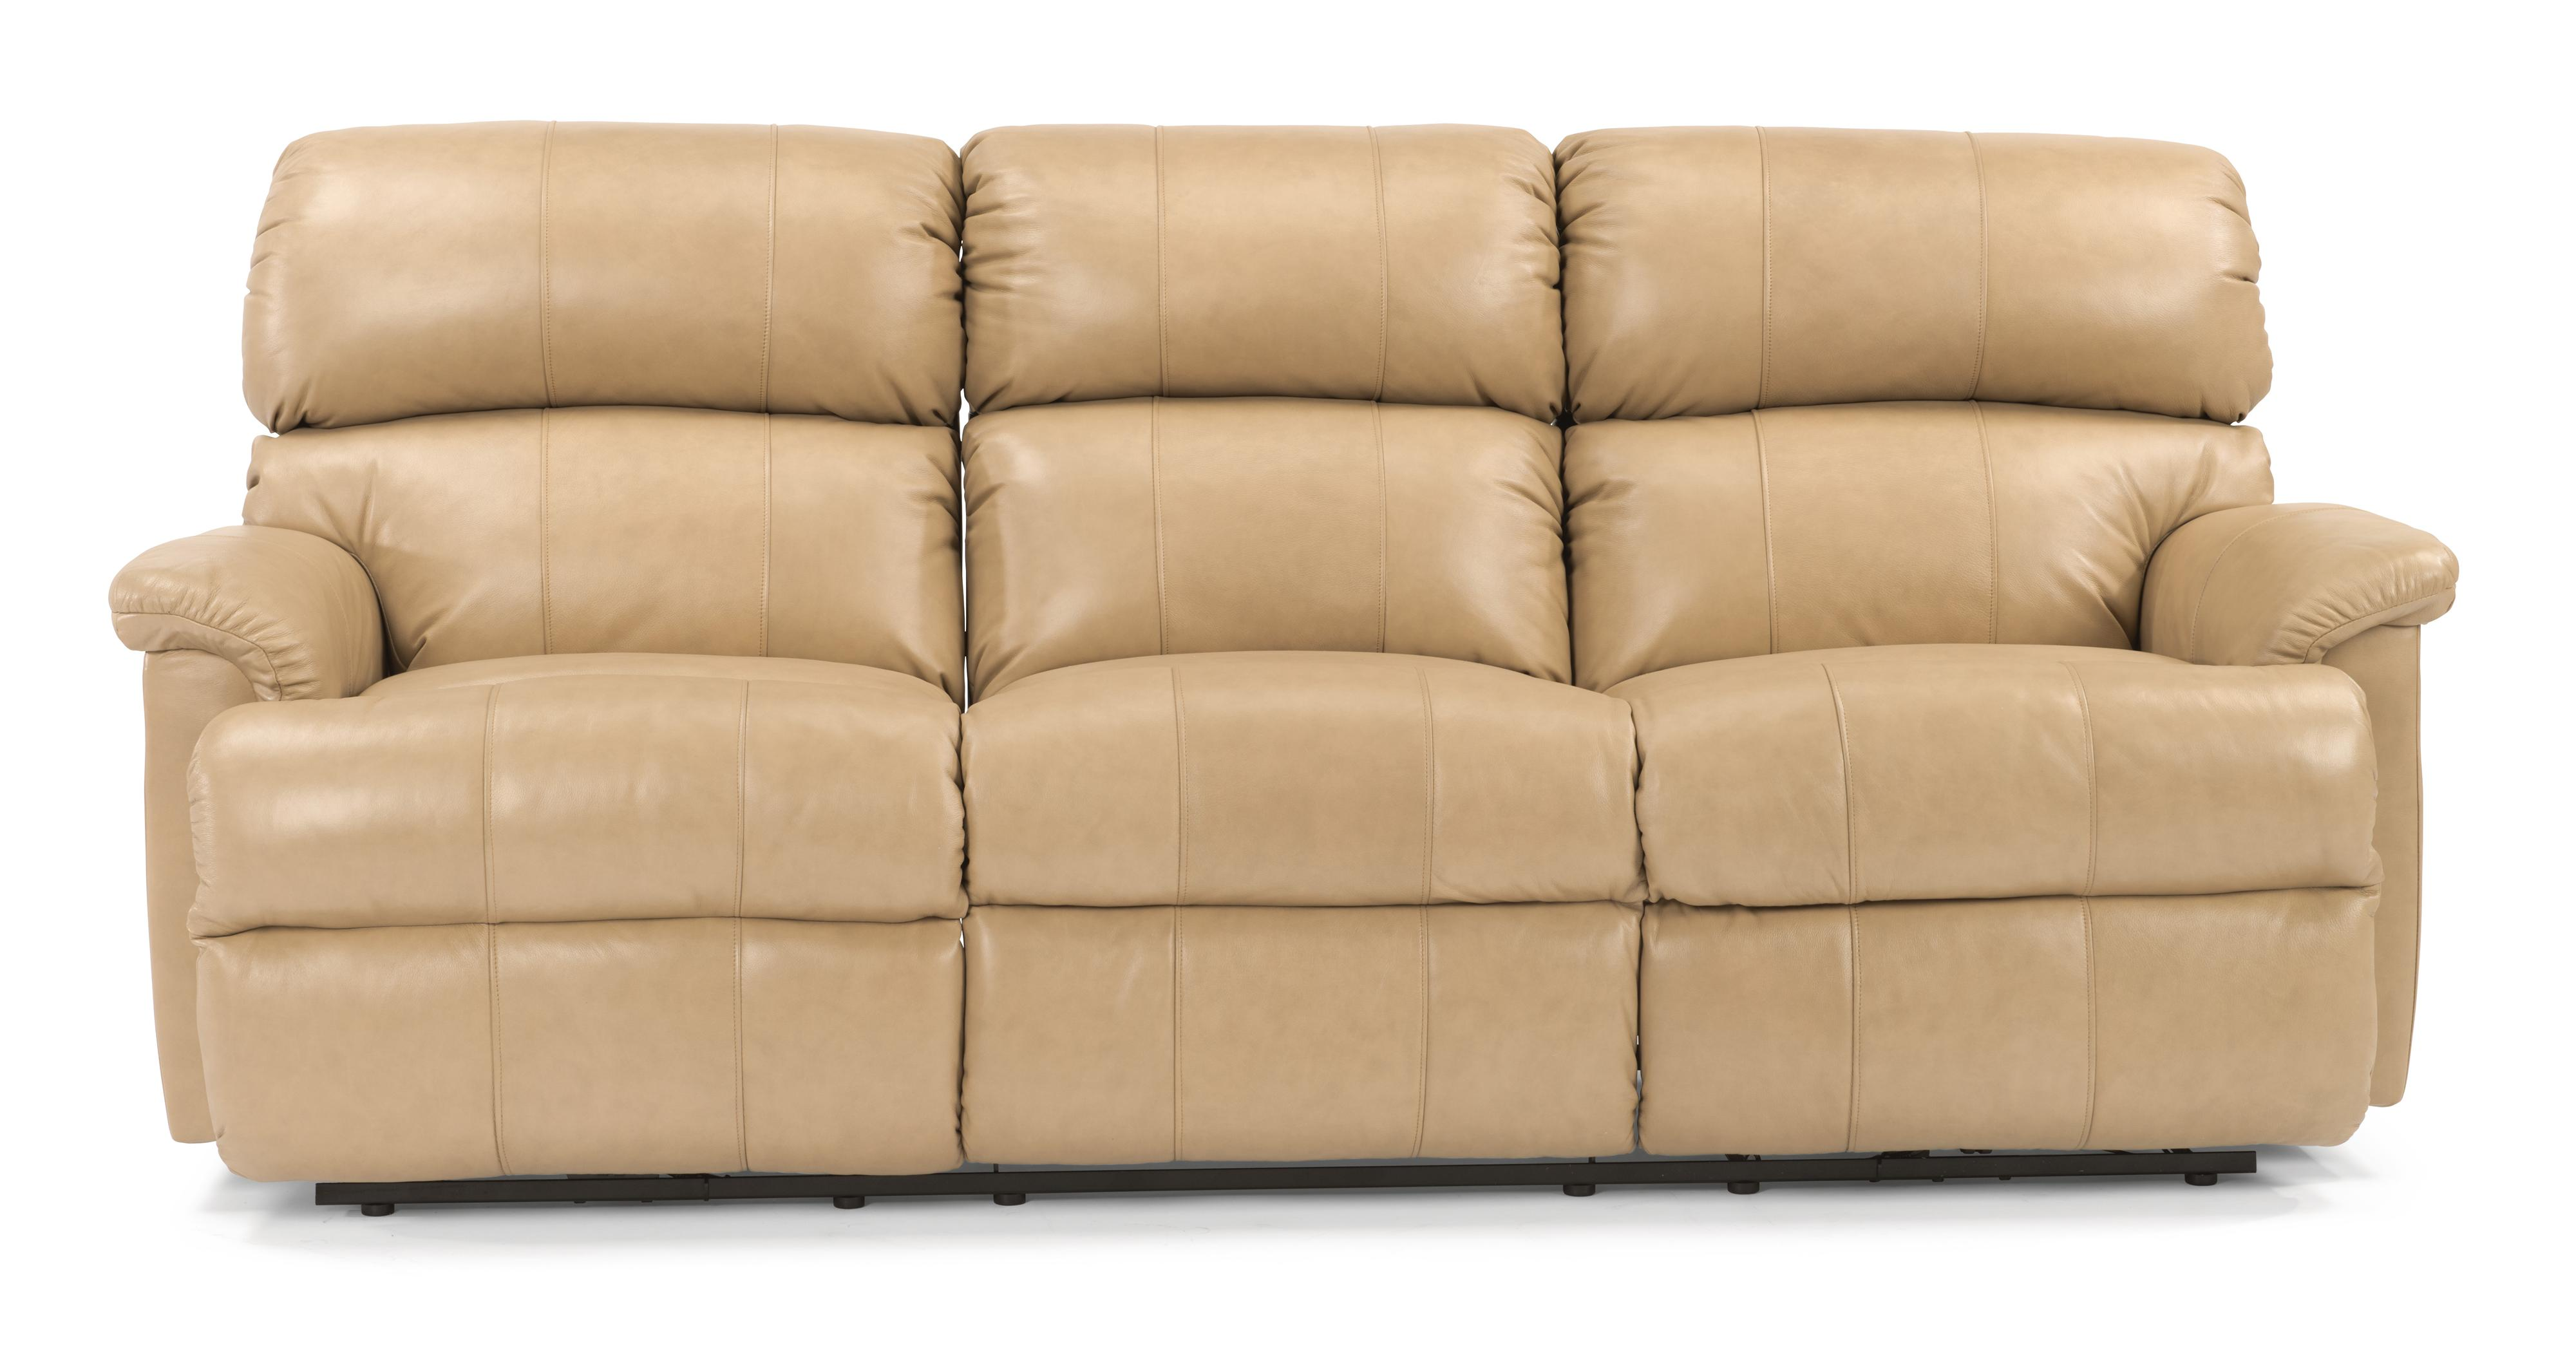 Flexsteel Chicago Reclining Sofa - Item Number: 3066-62M